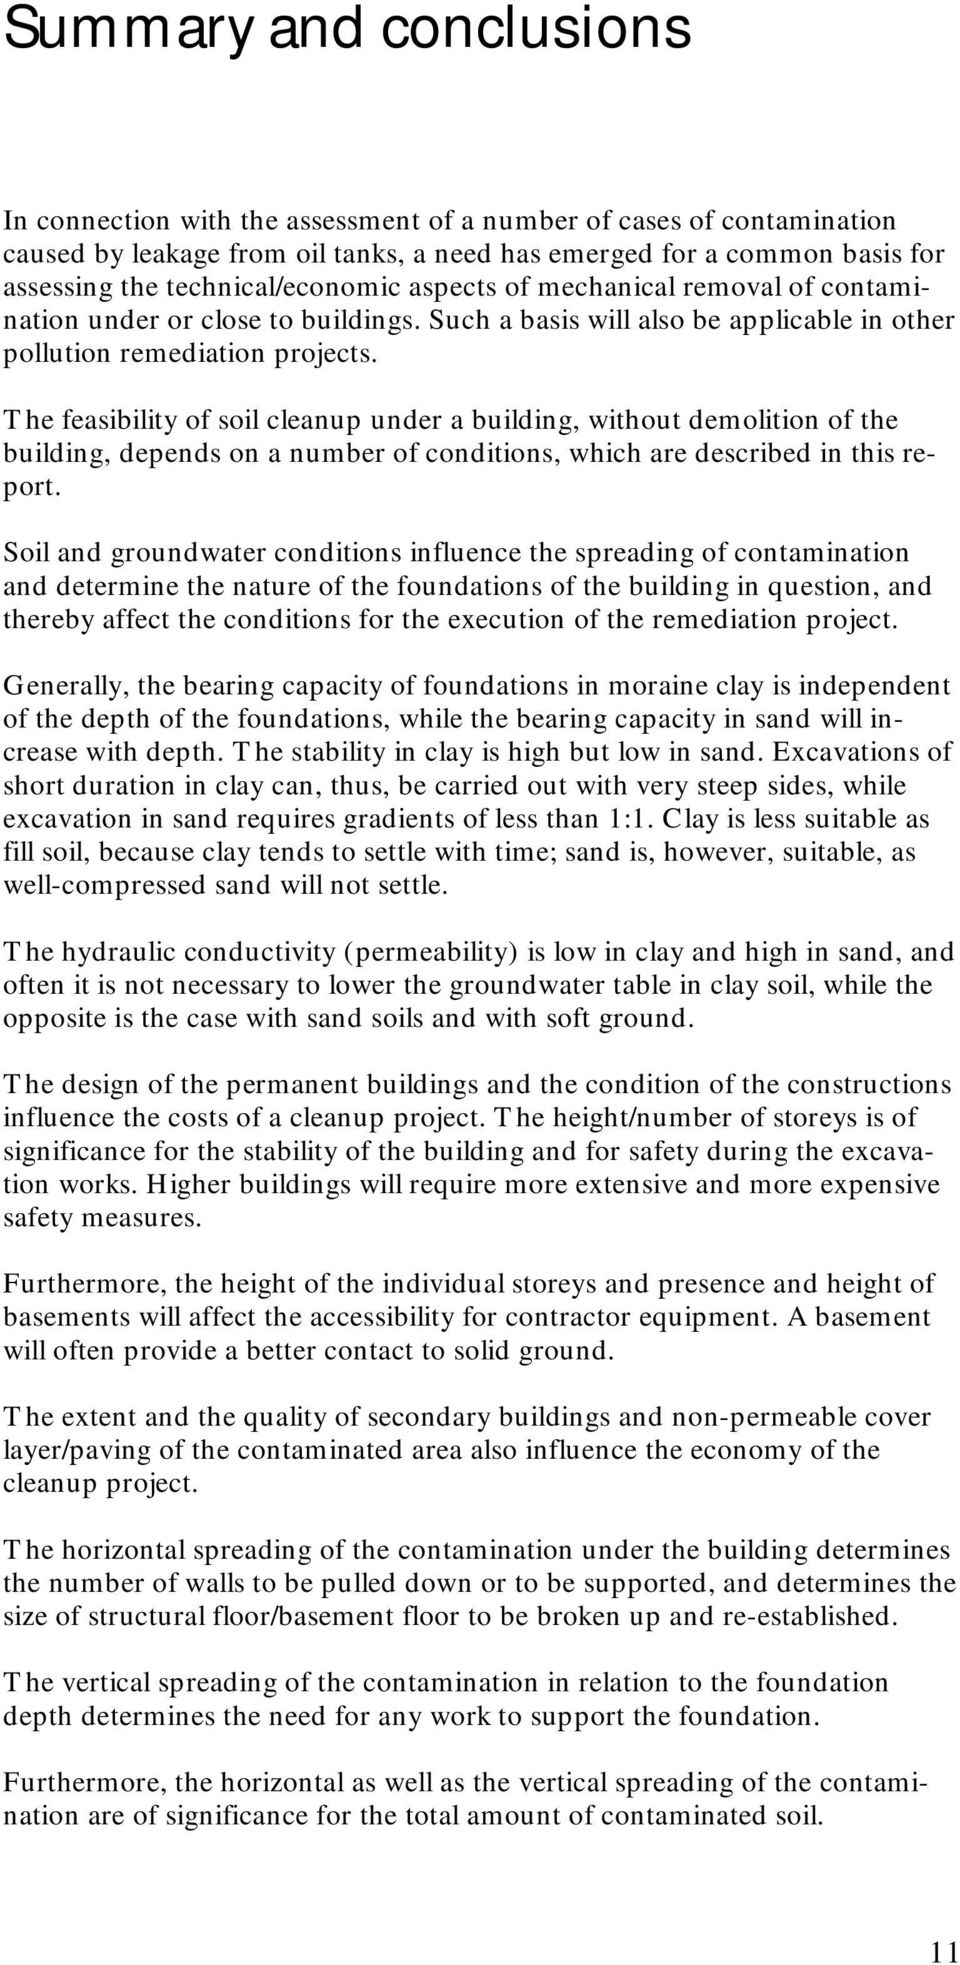 The feasibility of soil cleanup under a building, without demolition of the building, depends on a number of conditions, which are described in this report.